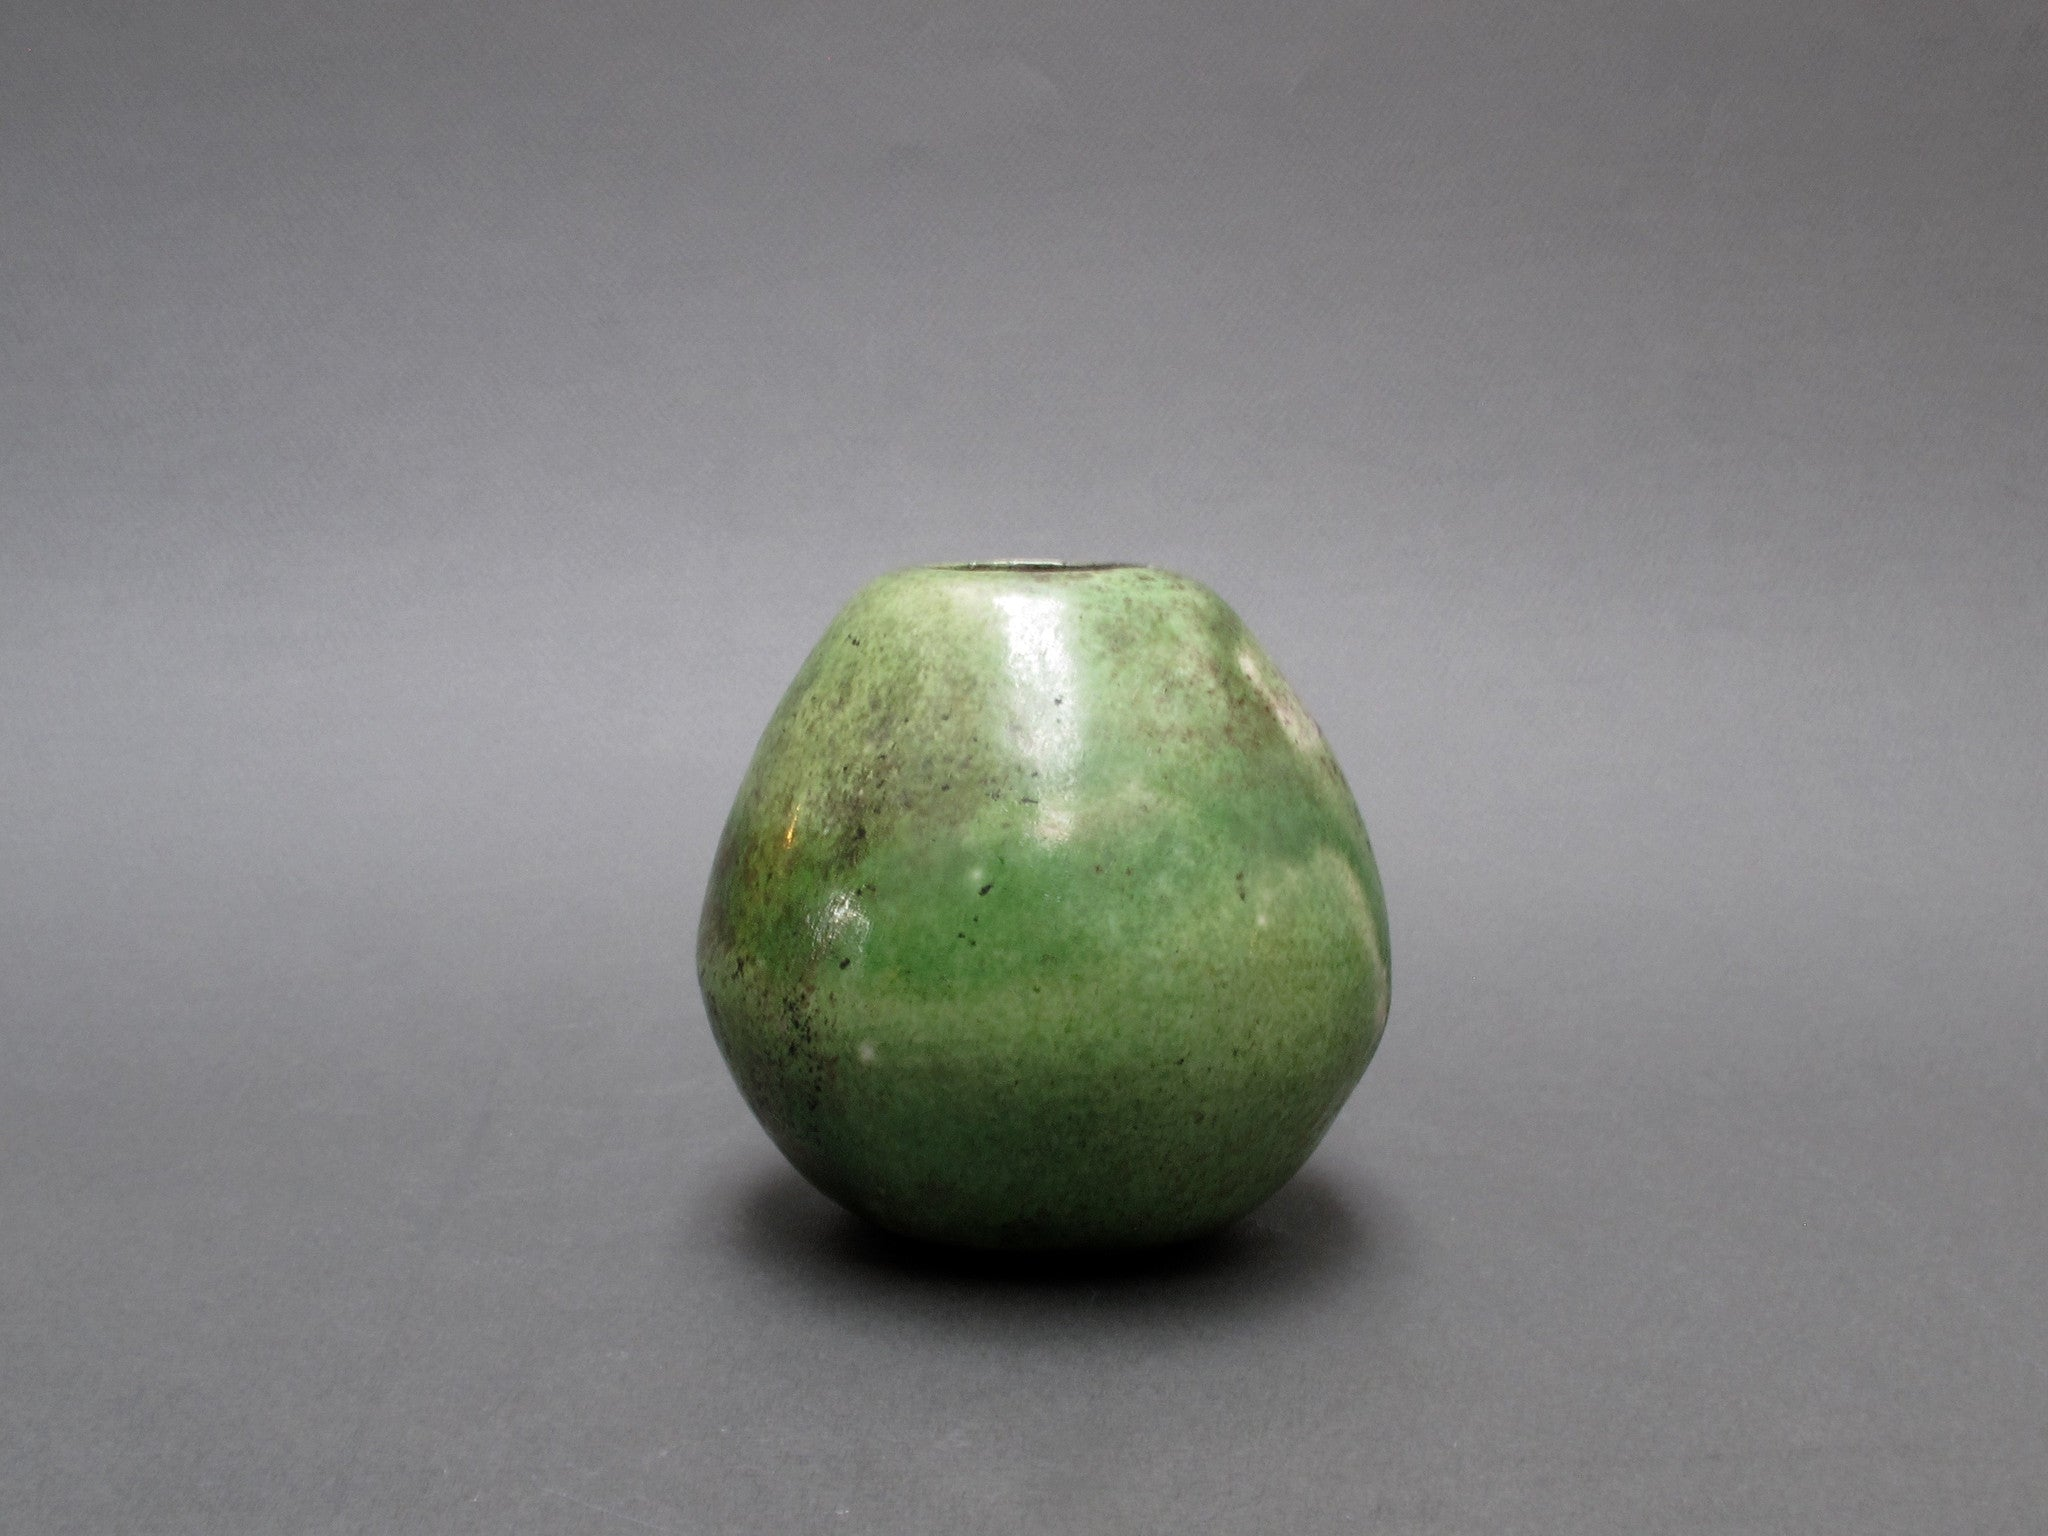 Avocado-shaped Mid-Century Ceramic vase (c. 1960s)